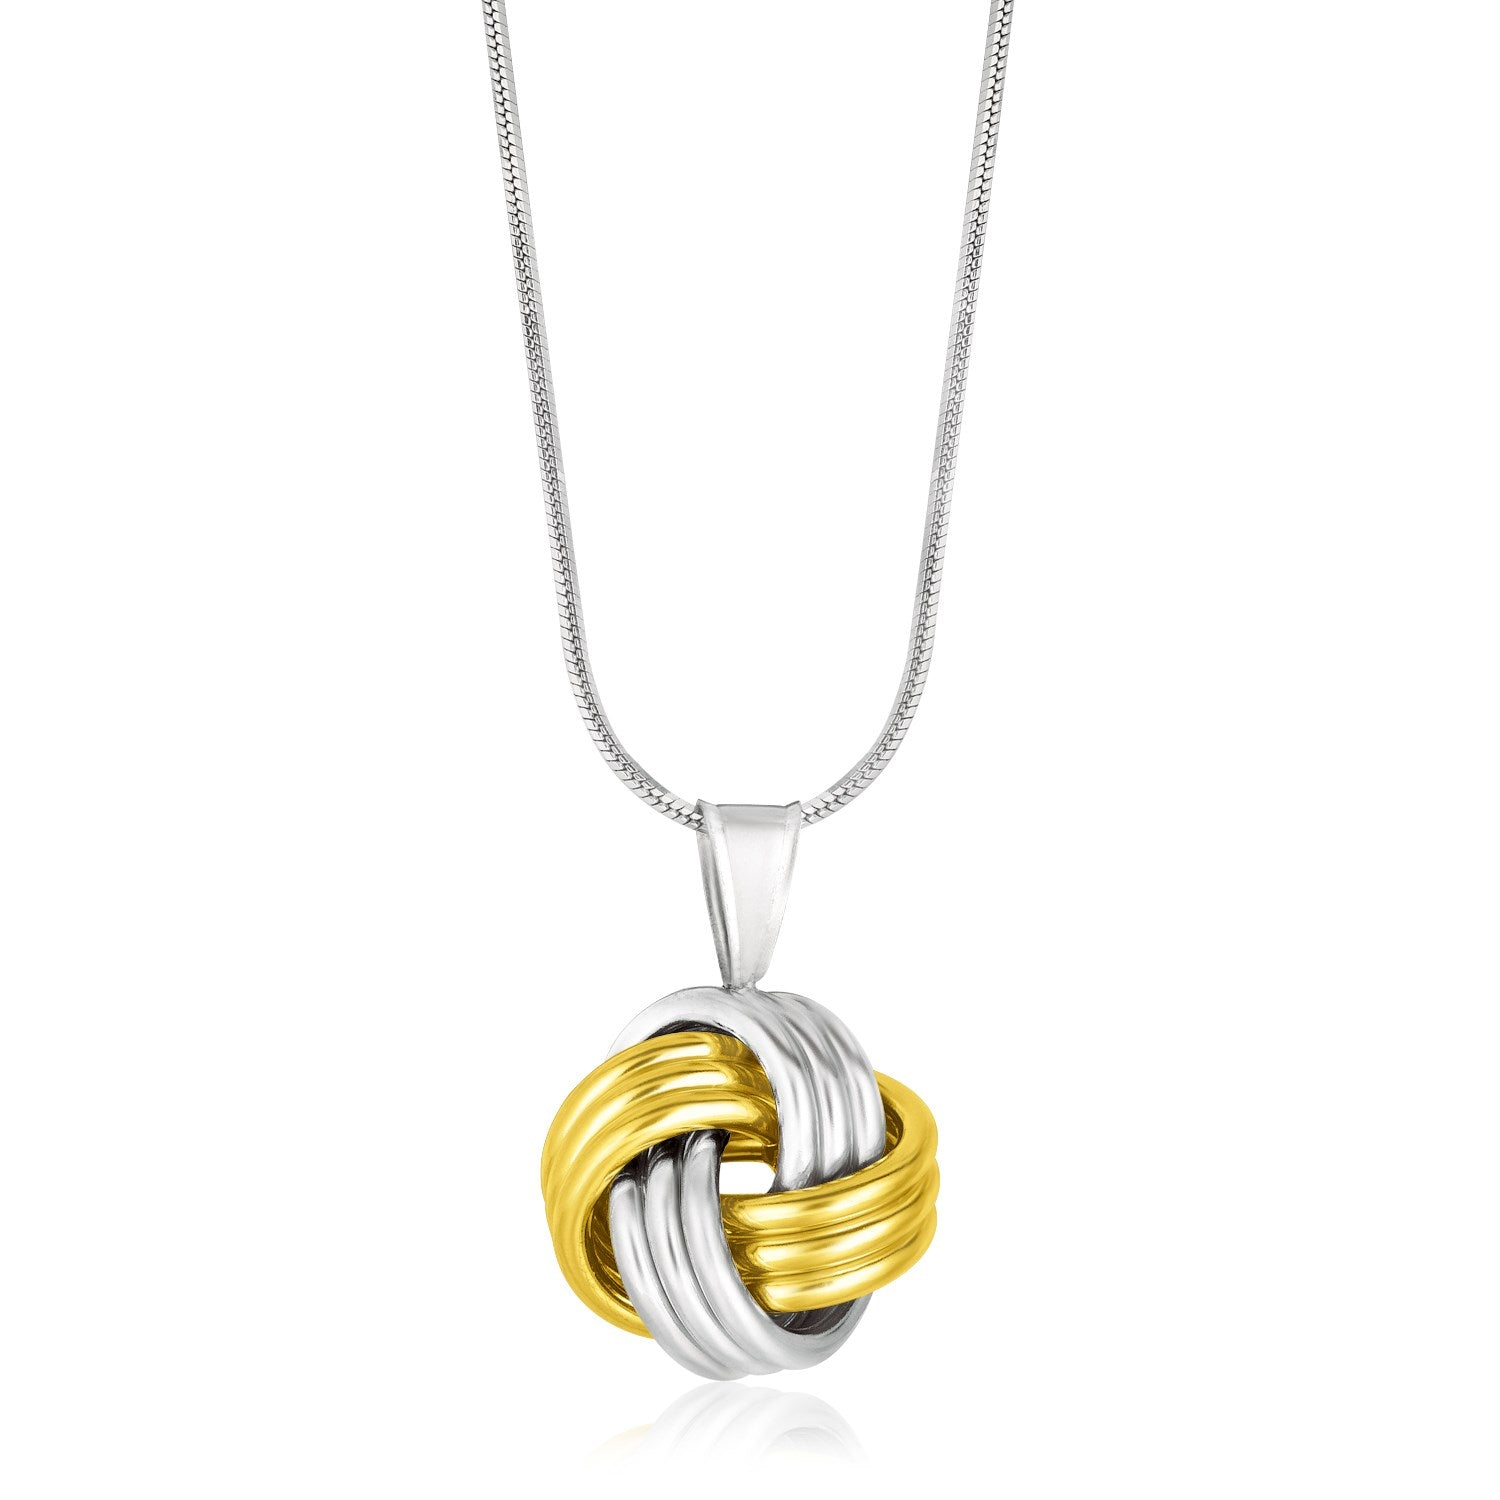 ccccfa1f1 14k Yellow Gold & Sterling Silver Pendant in a Ridge Texture Love Knot Style